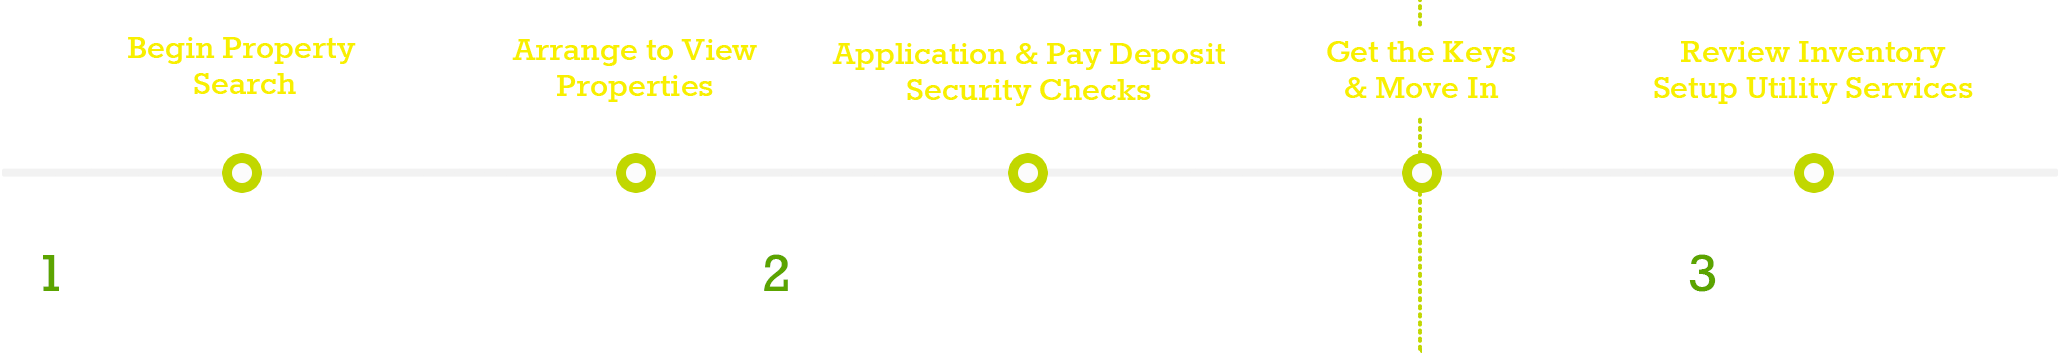 1. Begin Property Search, 2. Arrange to View Properties, 3. Application & Pay Deposit Security Checks, 4. Get the Keys & Move In, 5. Review Inventory Setup Utility Services